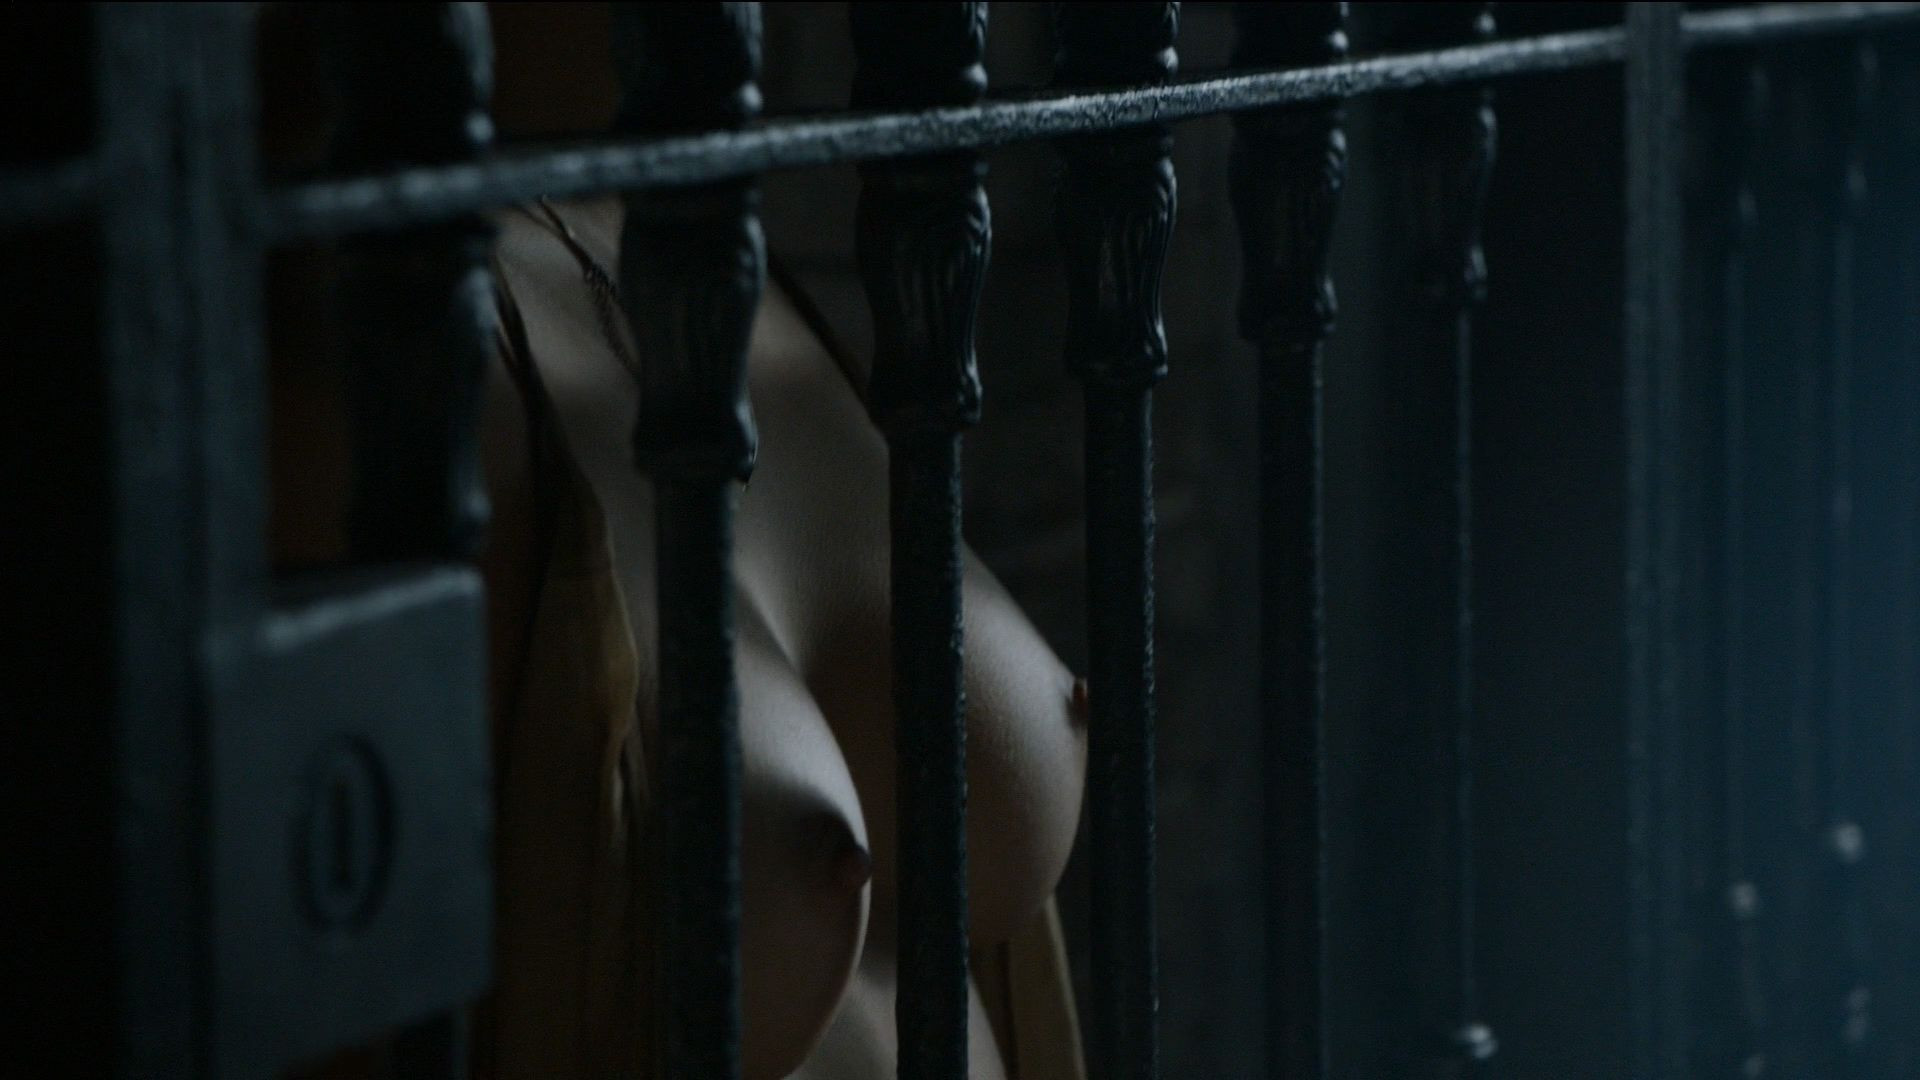 Rosabell Laurenti Sellers Topless 4 TheFappening.nu